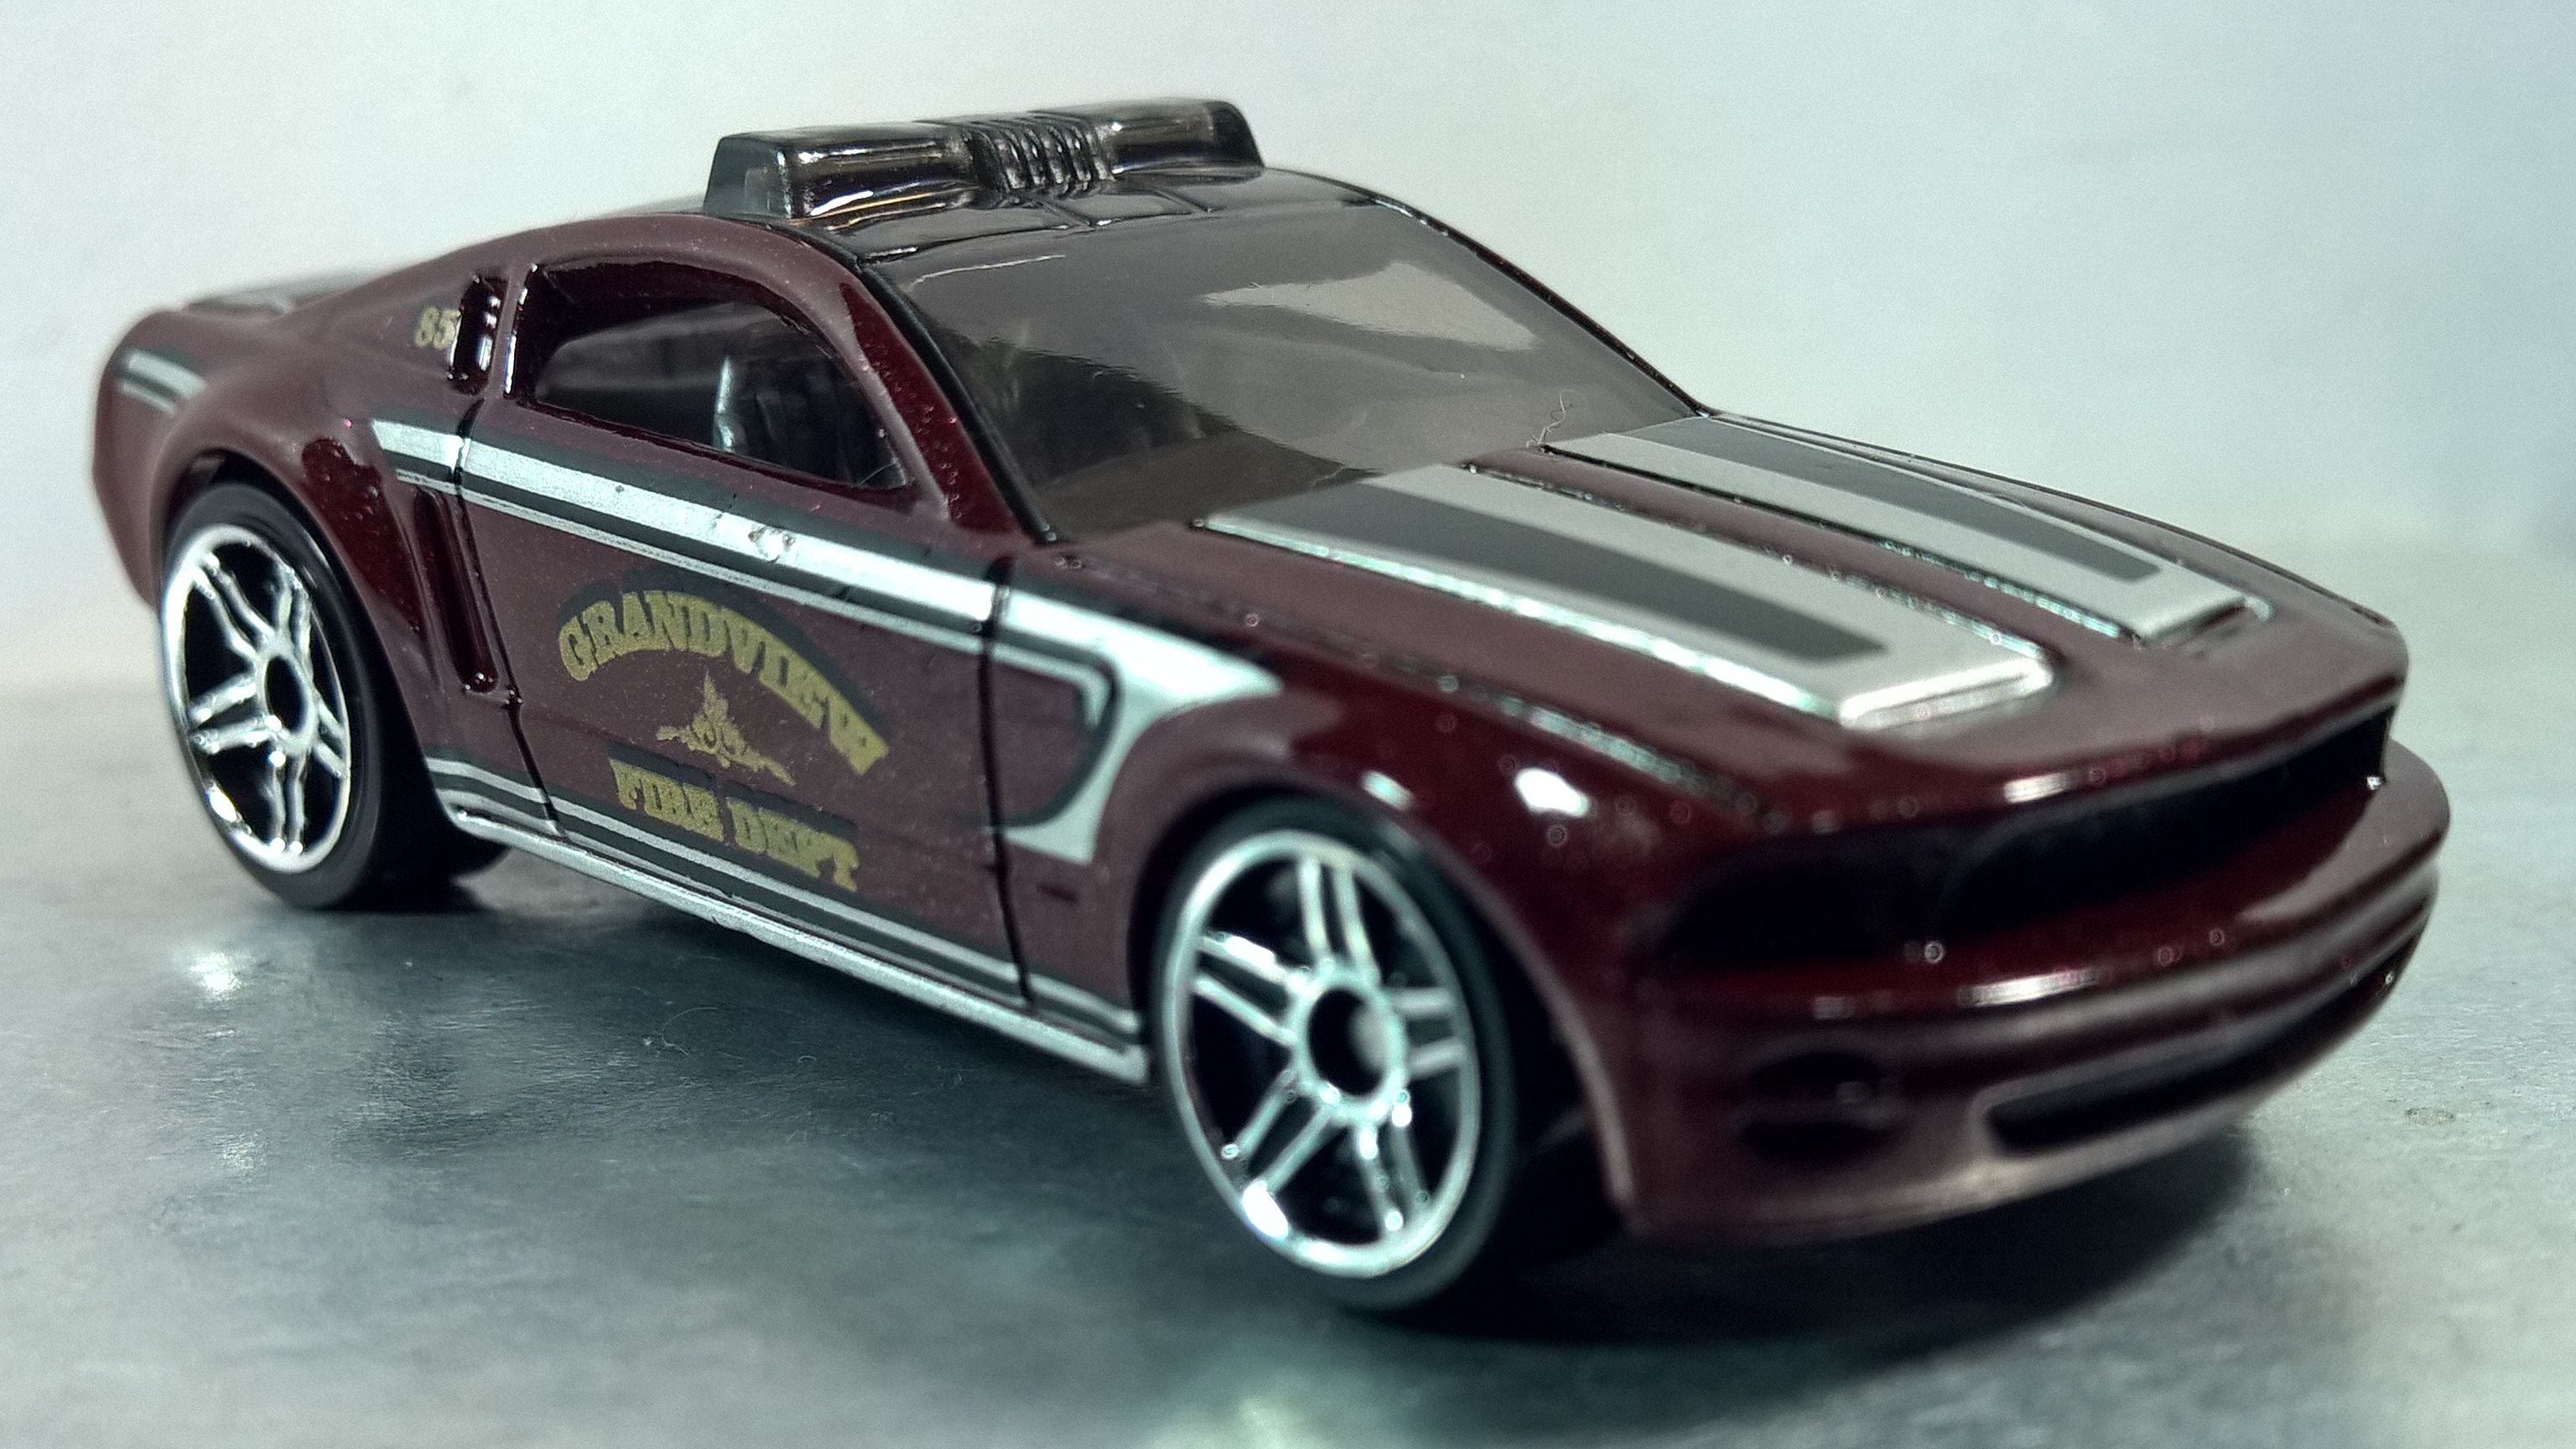 Ford Mustang Gt Concept Hw Main Street 2 10 2011 7 Ford Mustang Gt Hot Wheels Mustang Gt